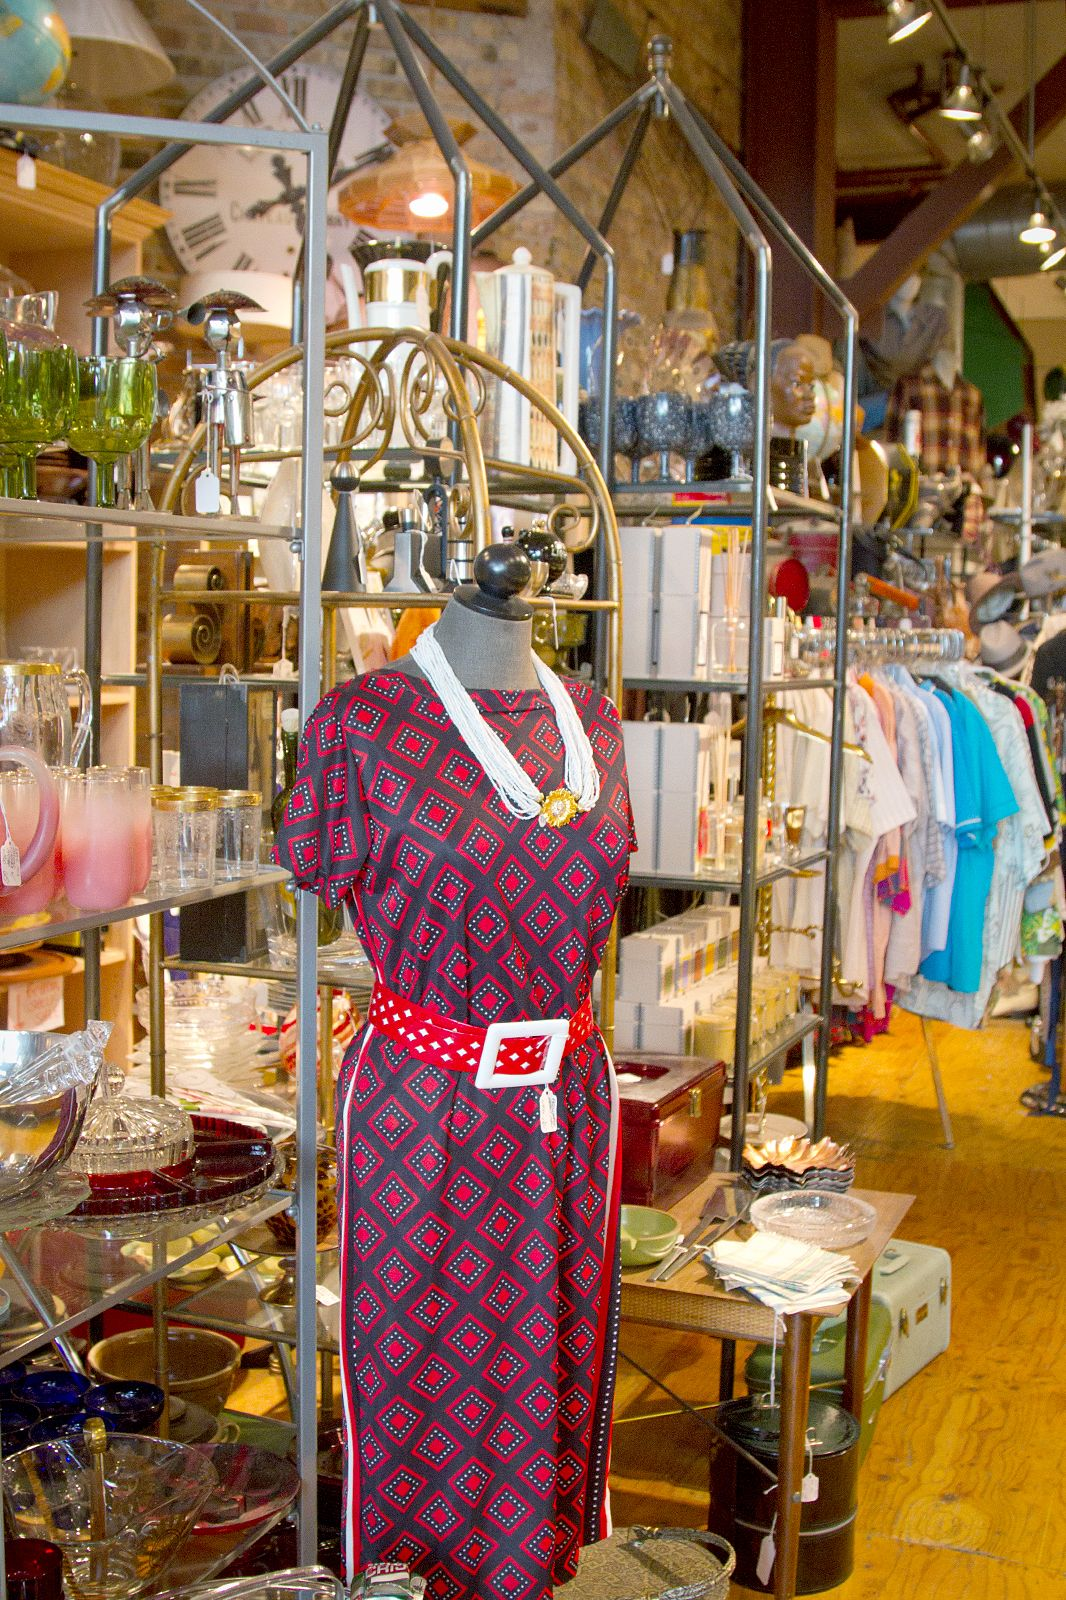 Store B Vintage While the prices are a bit higher at this small Wicker Park  shop, items (from housewares to clothing to accessories) are in good  condition, ...